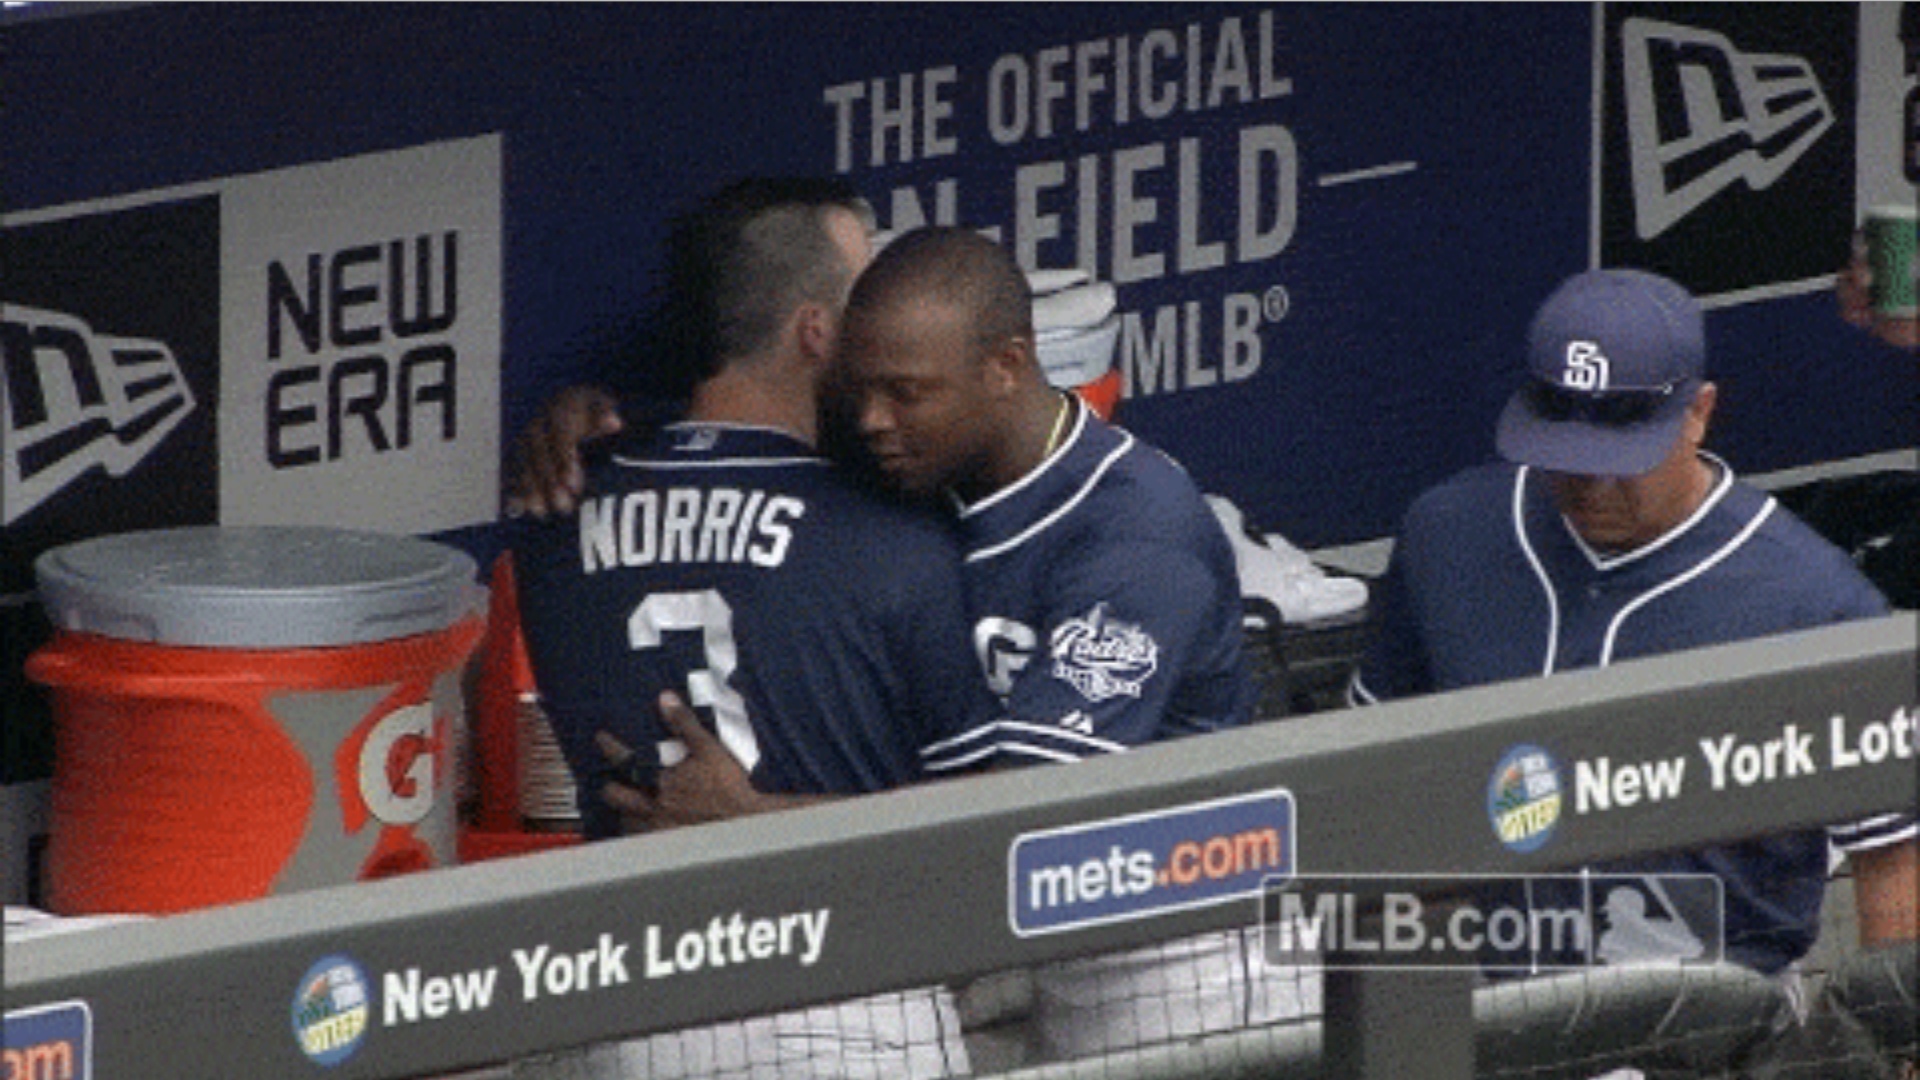 Justin Upton trolls amid trade rumors, gives fake hugs to teammates